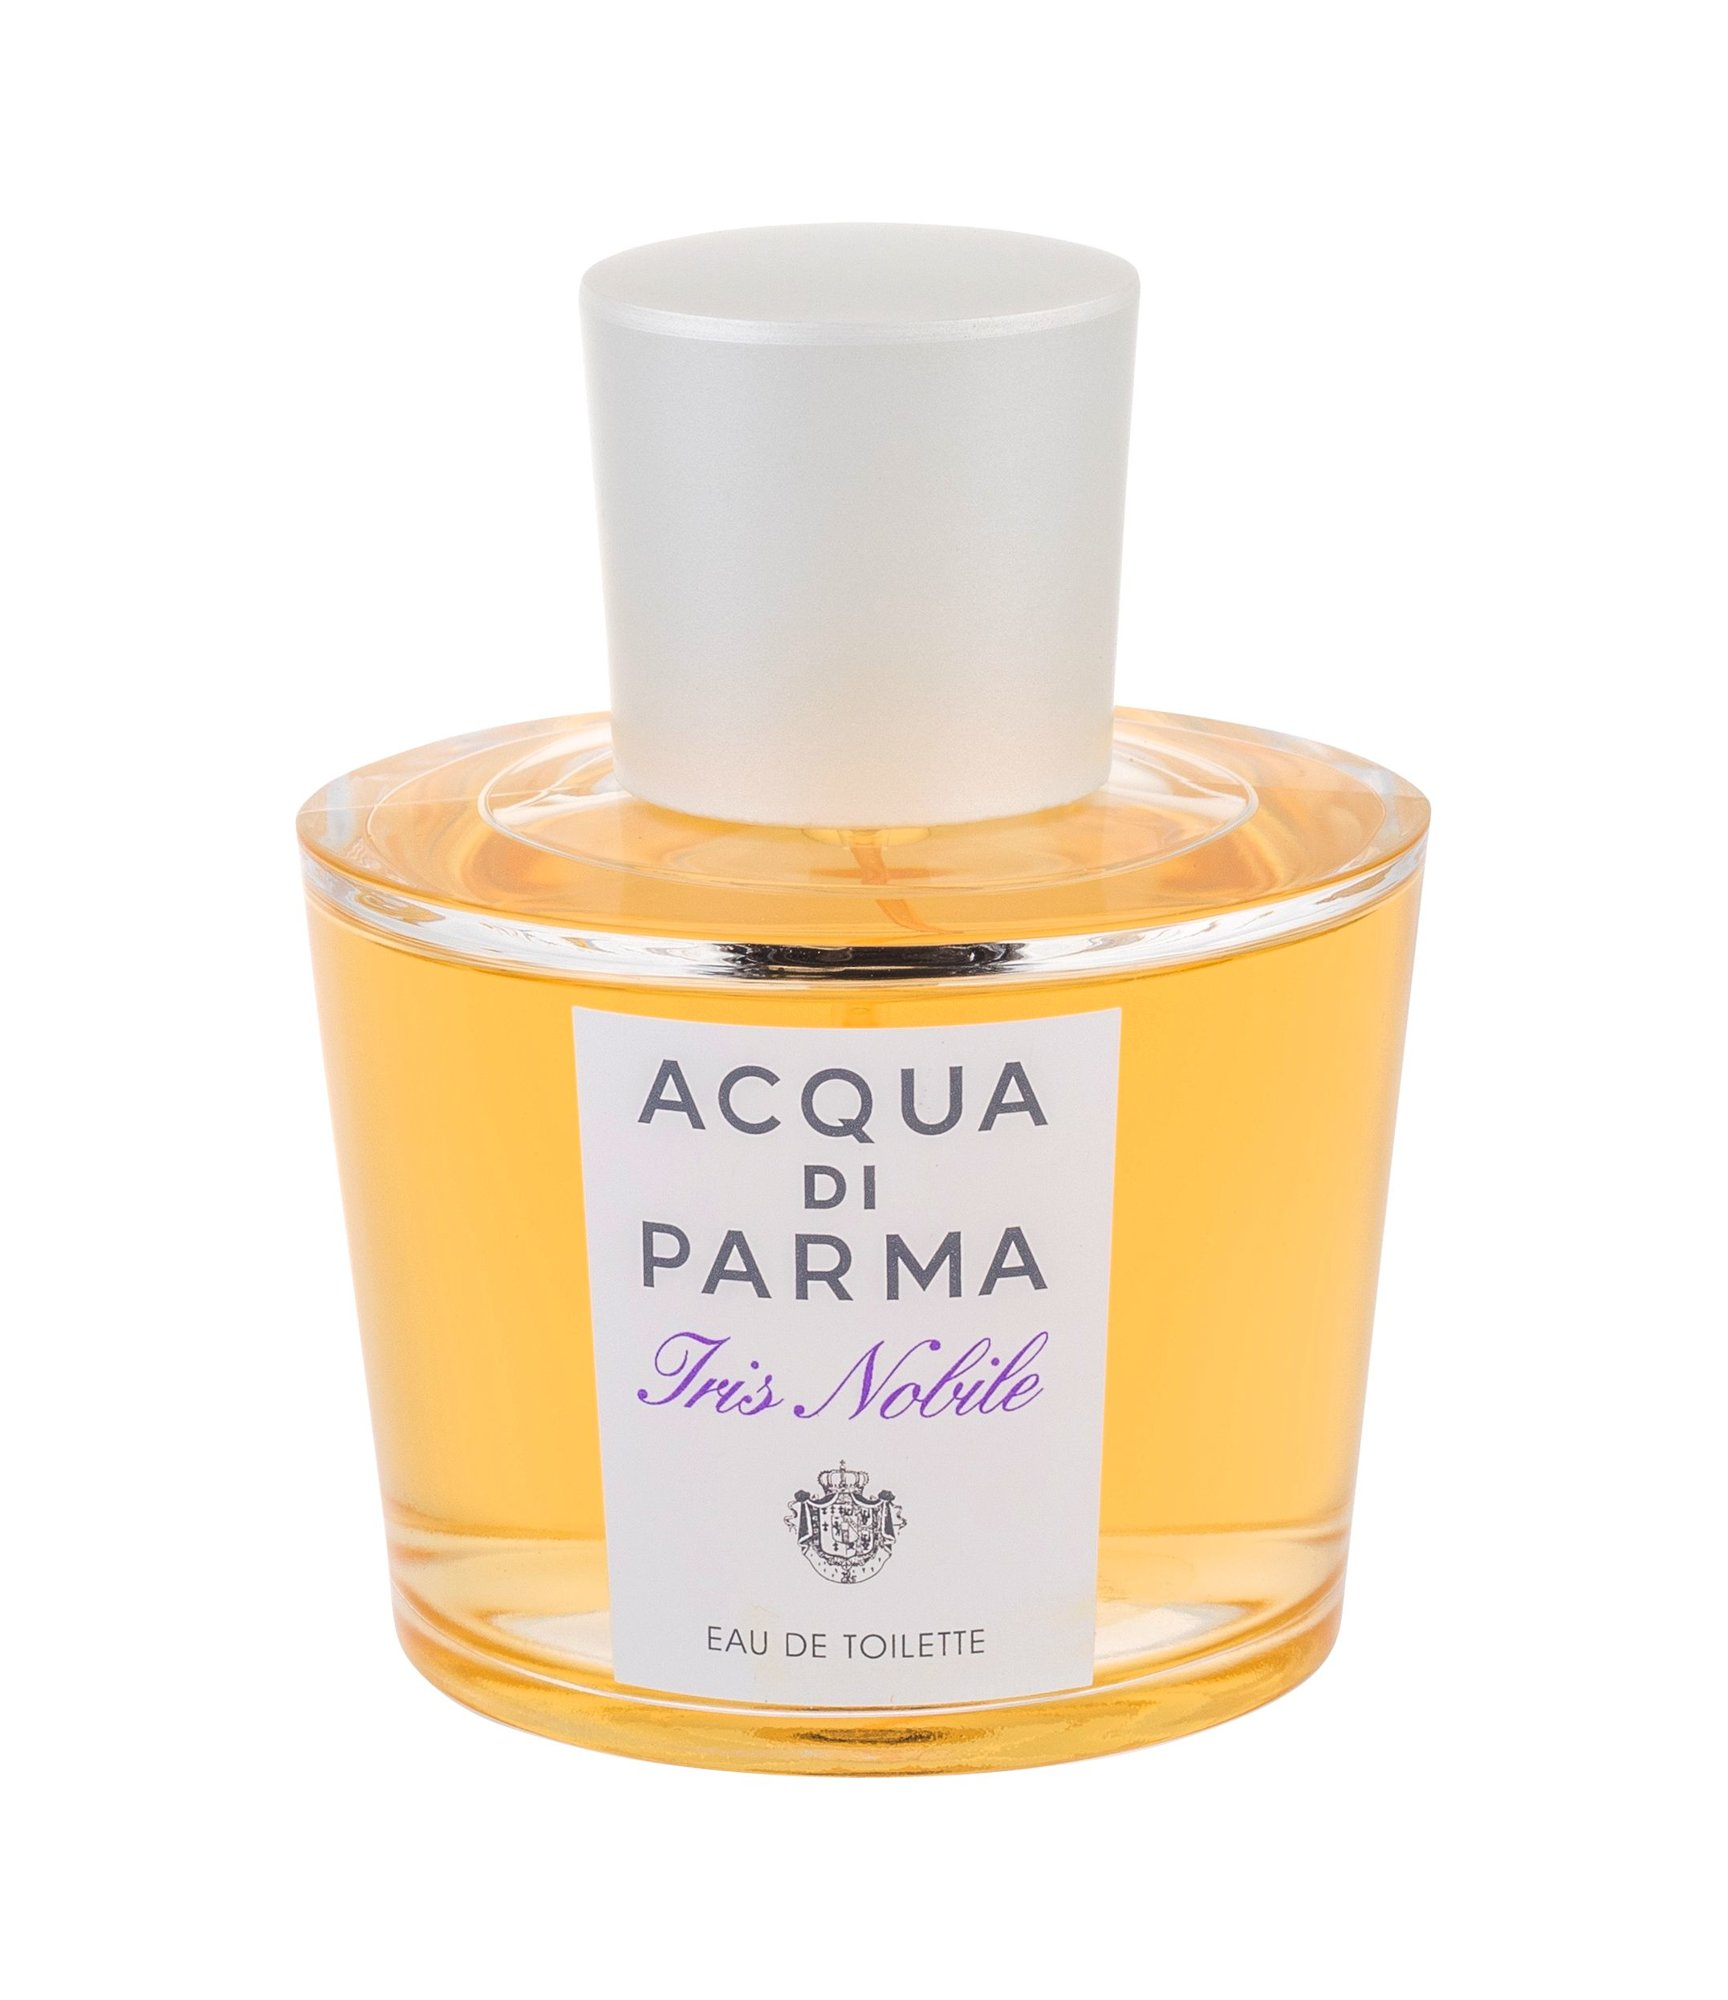 Acqua di Parma Iris Nobile EDT 100ml